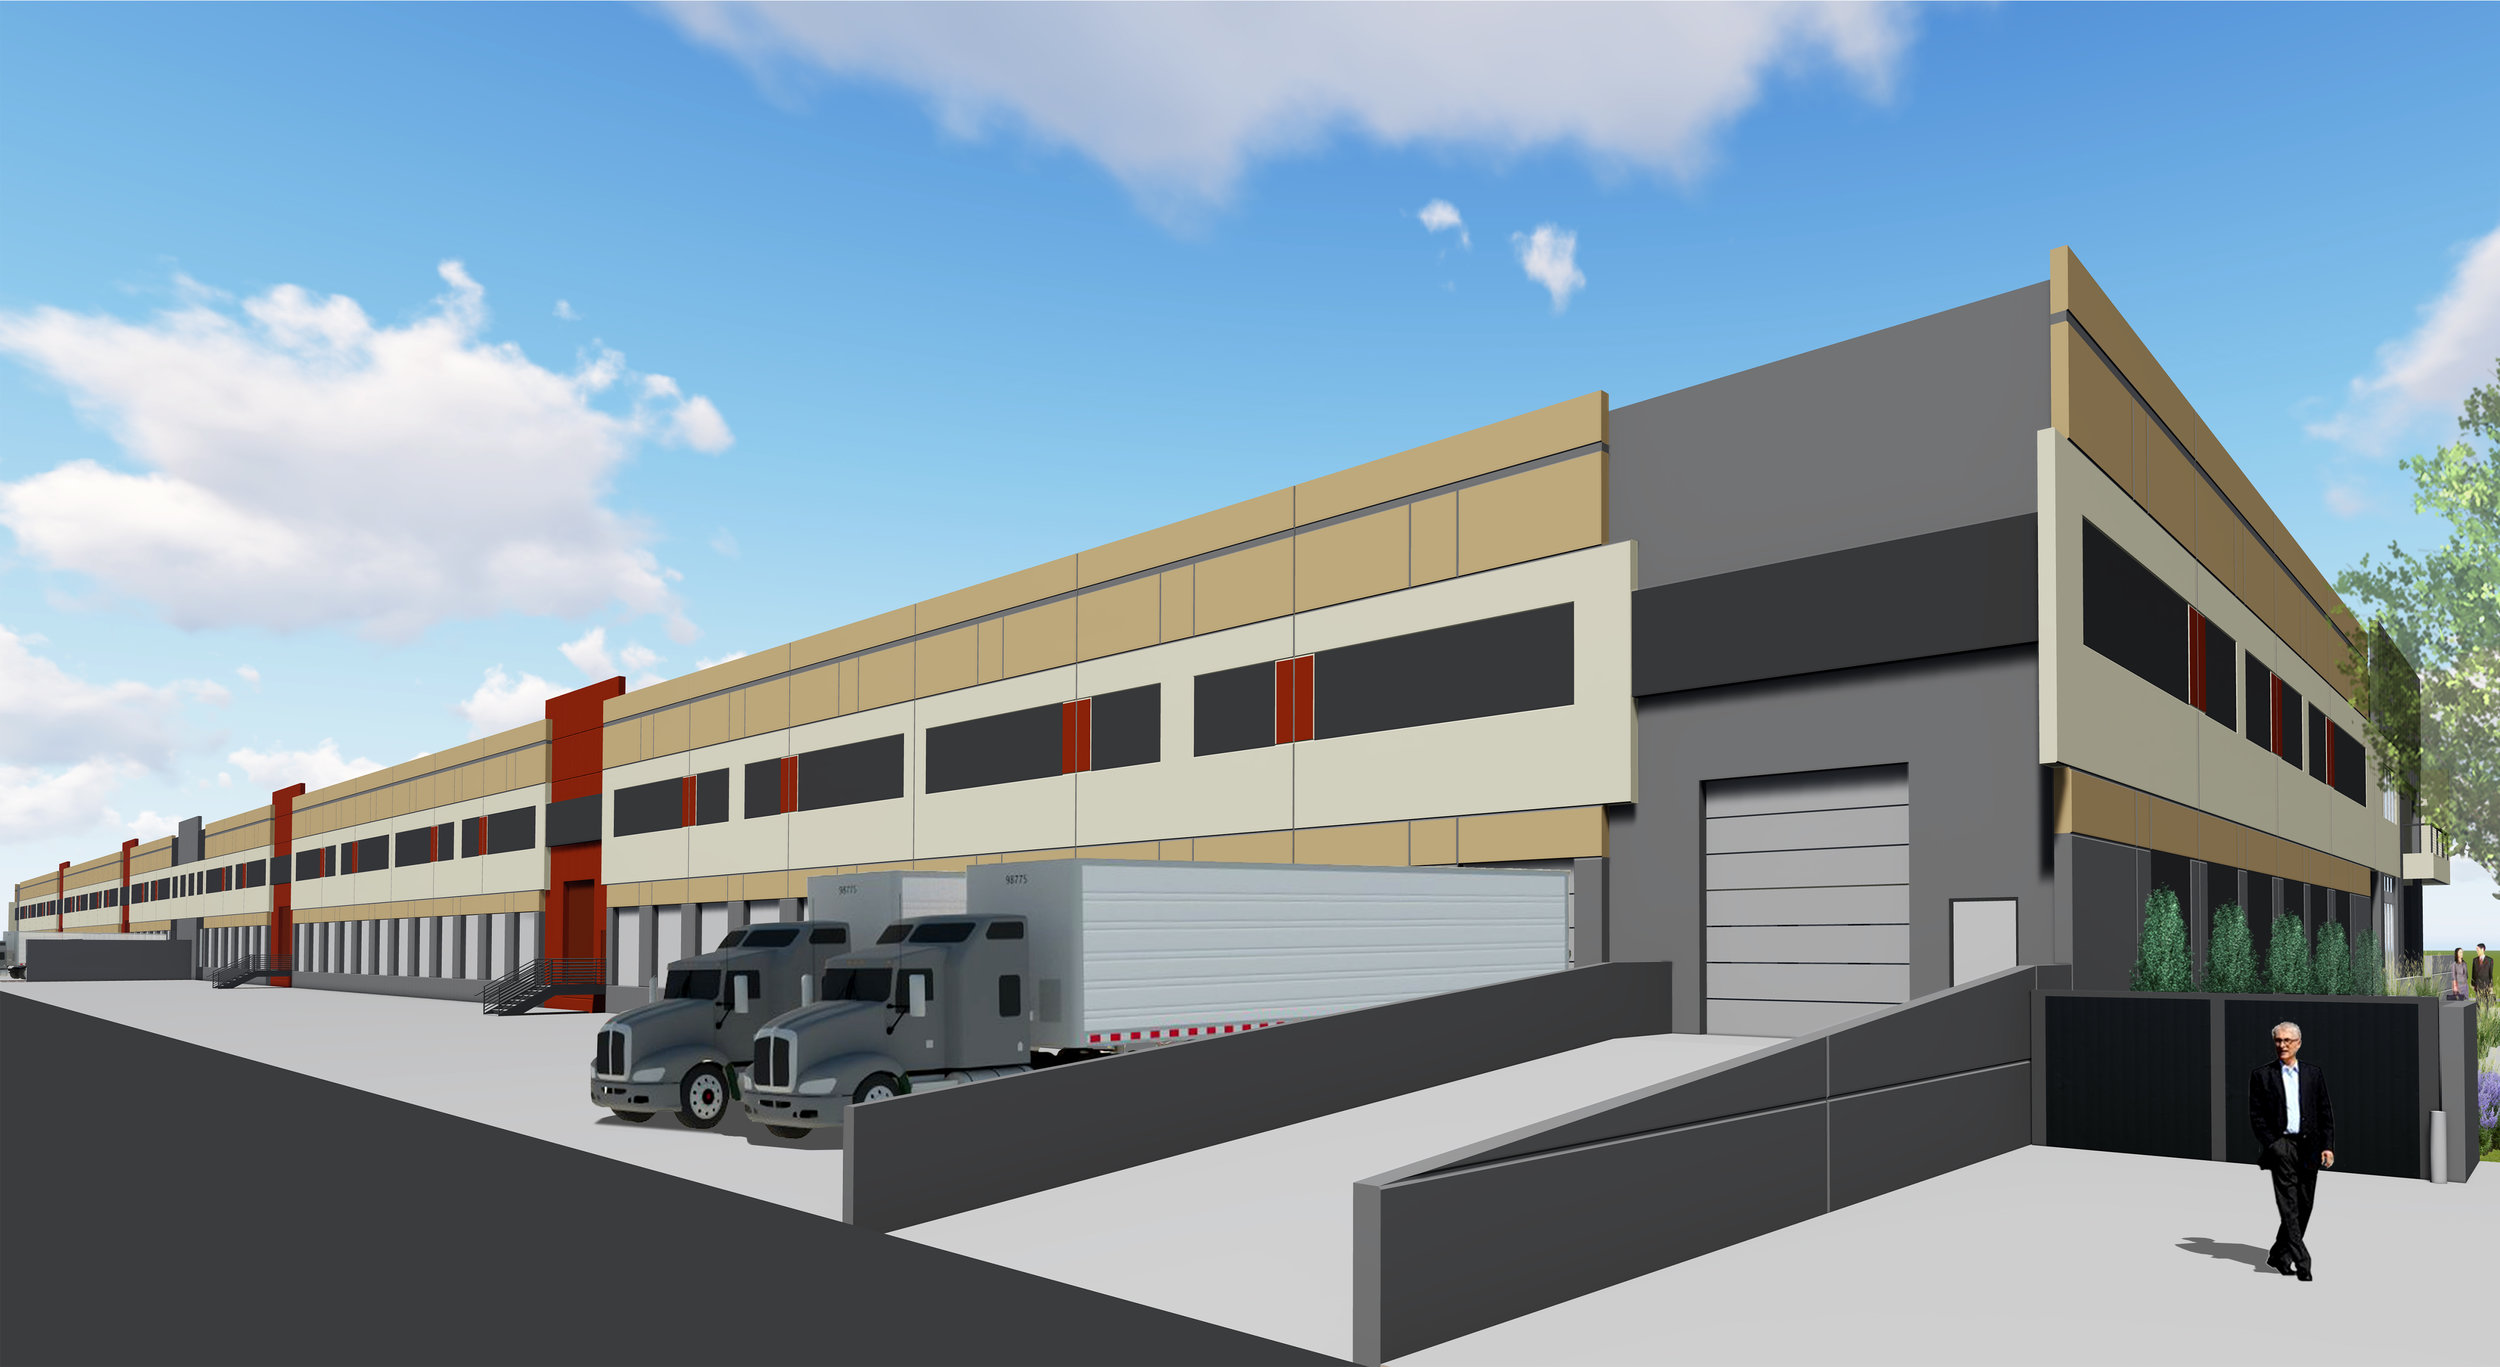 J.A. Green Buys 175 Acres At JAG Logistics Center - By Margaret Jackson -— January 29, 2019